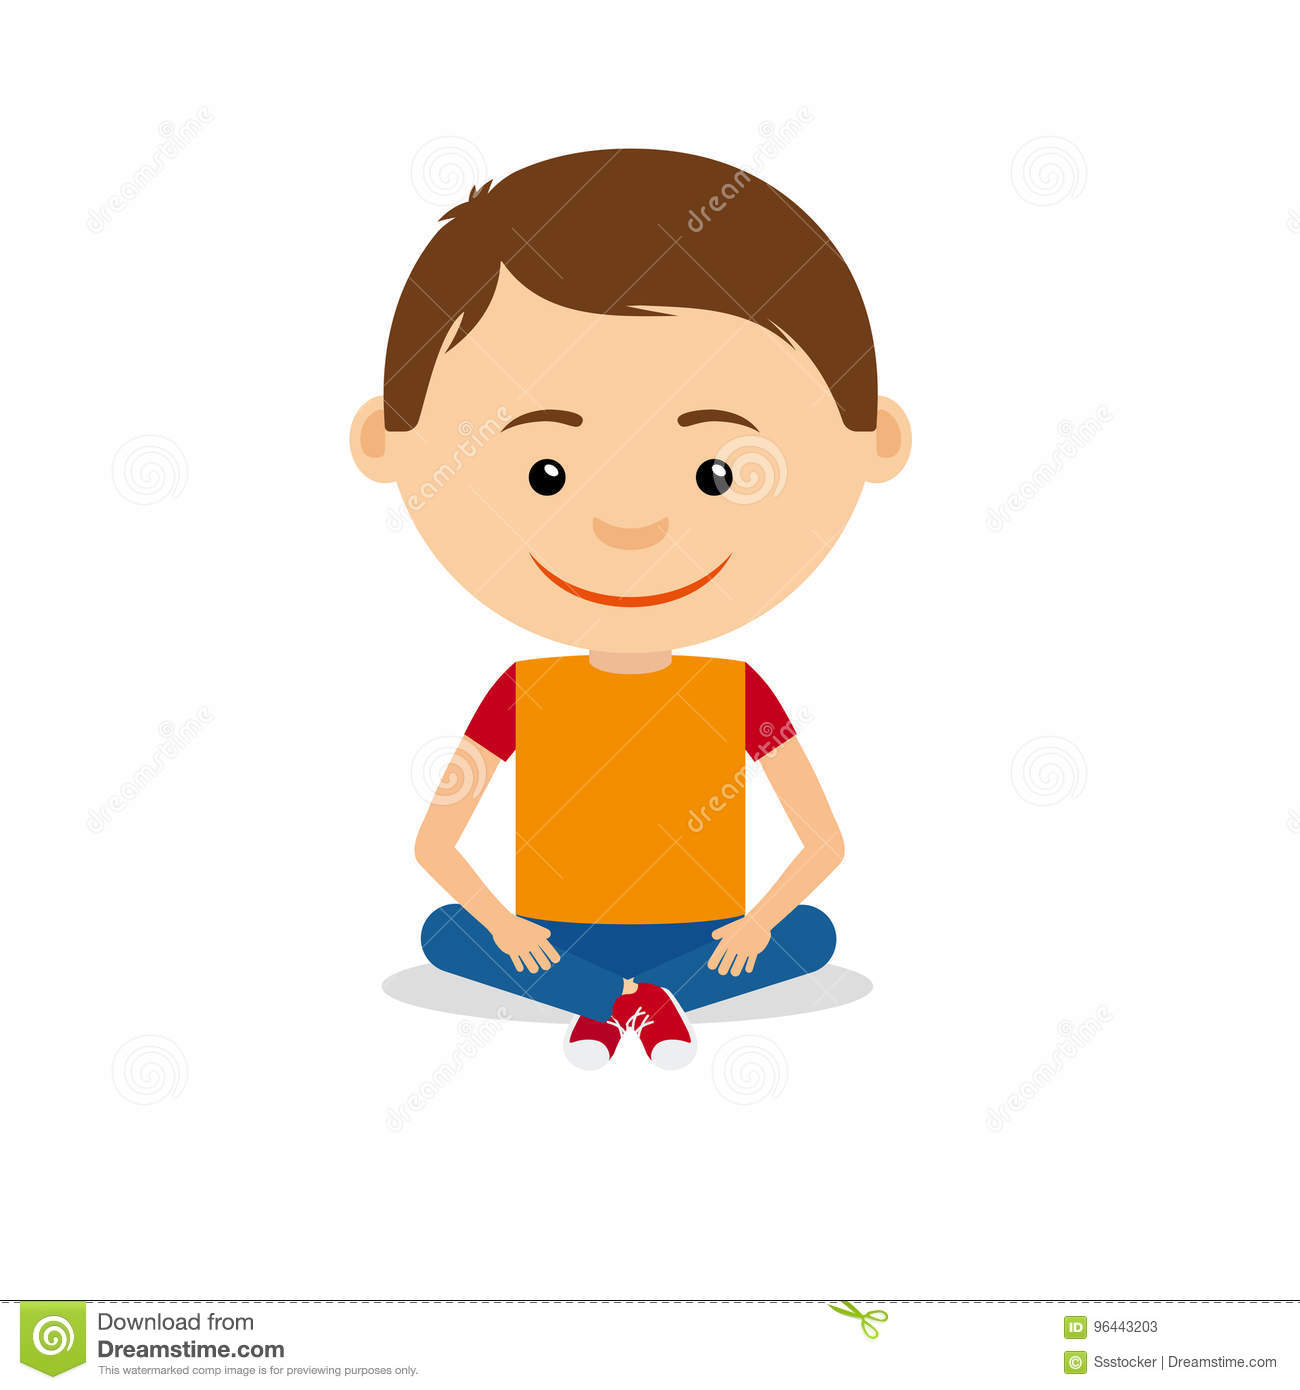 Boy sitting clipart 1 » Clipart Station.